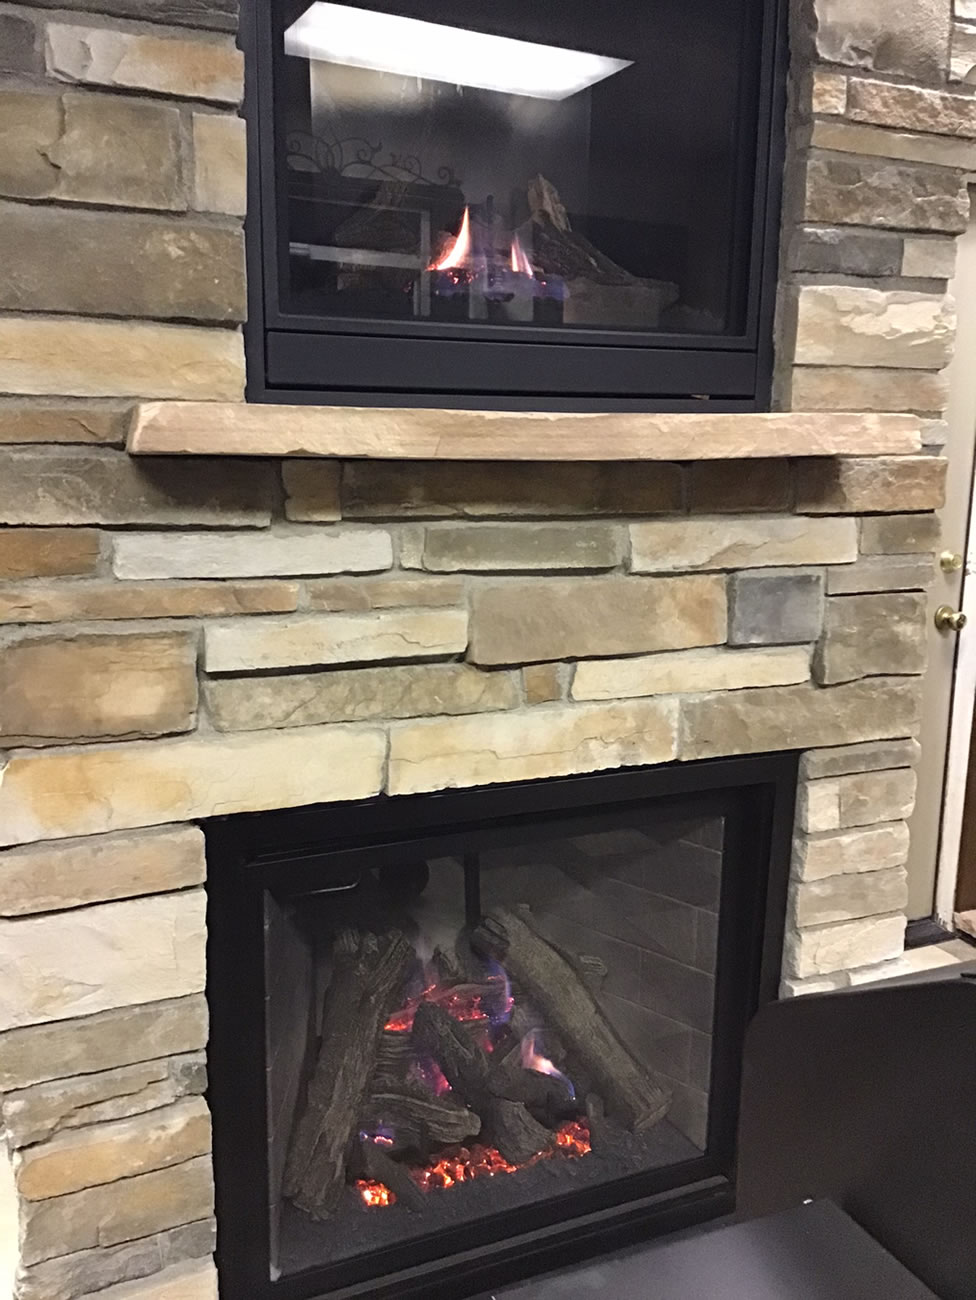 Flagstaff Gas Fireplaces, Flagstaff Gas Stoves, Flagstaff Gas Grills Sales and Installs